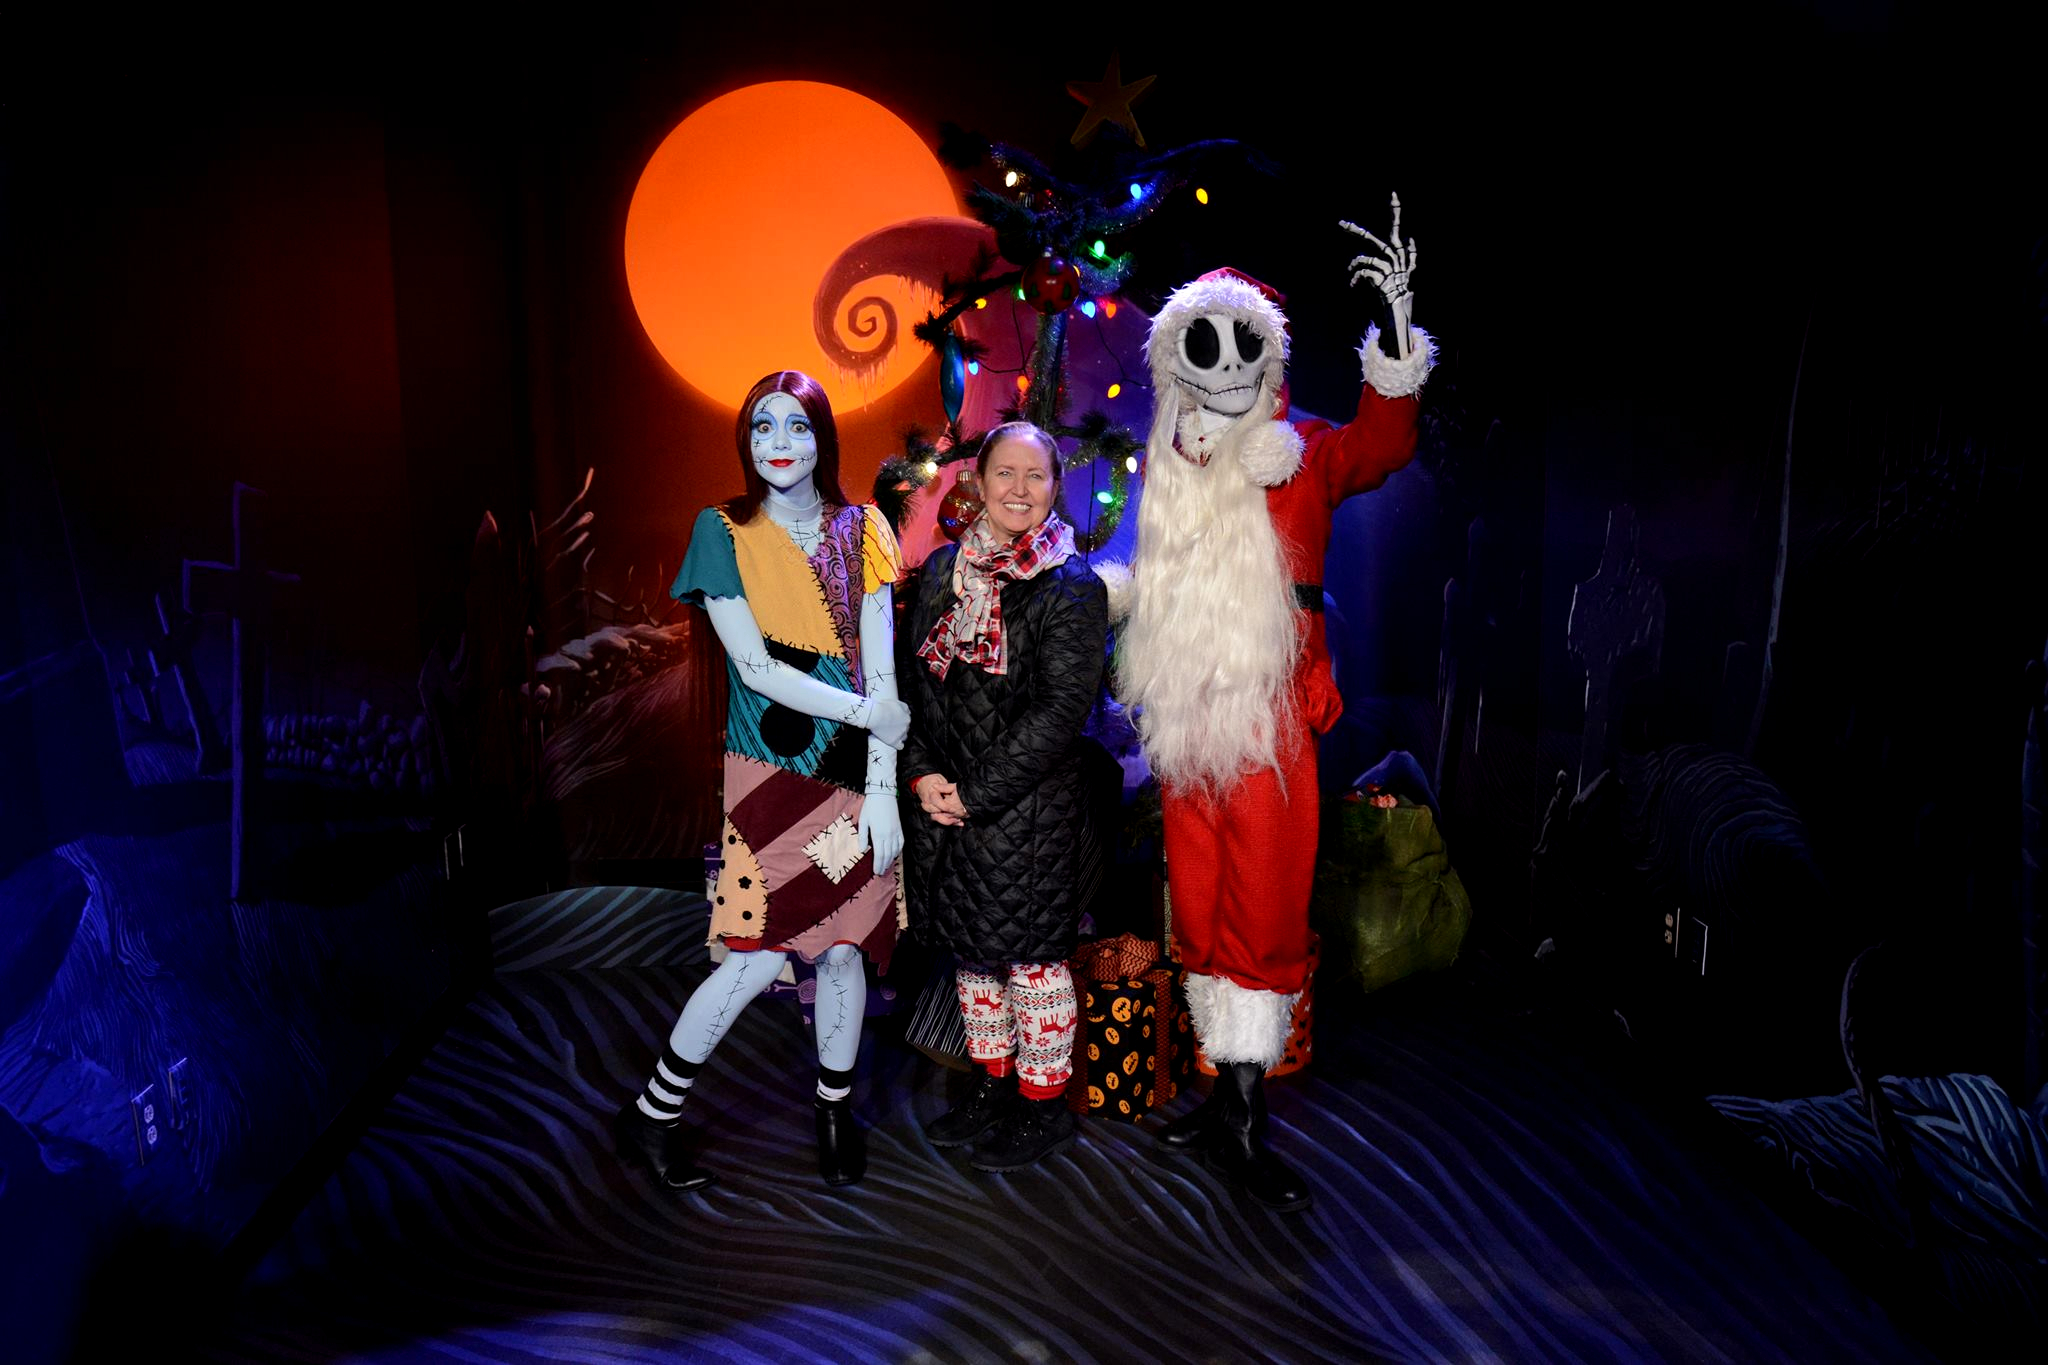 Meet Sandy Claws at Mickey's Very Merry Christmas Party.